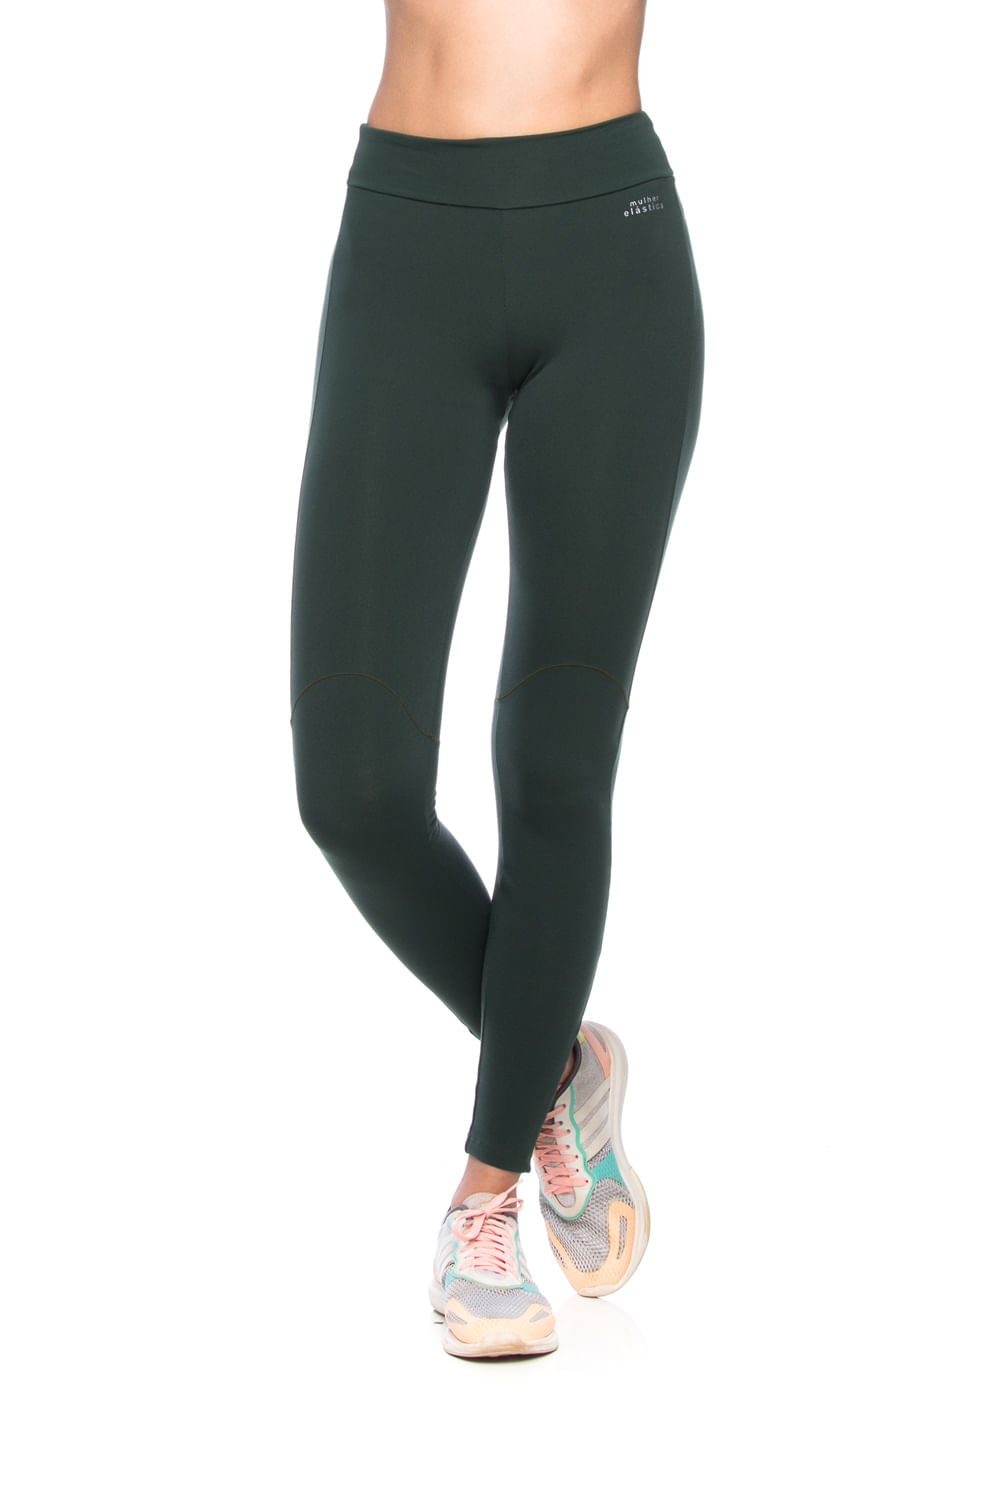 legging-fitness-supplex-crossfit-moda-academia-wod--4-